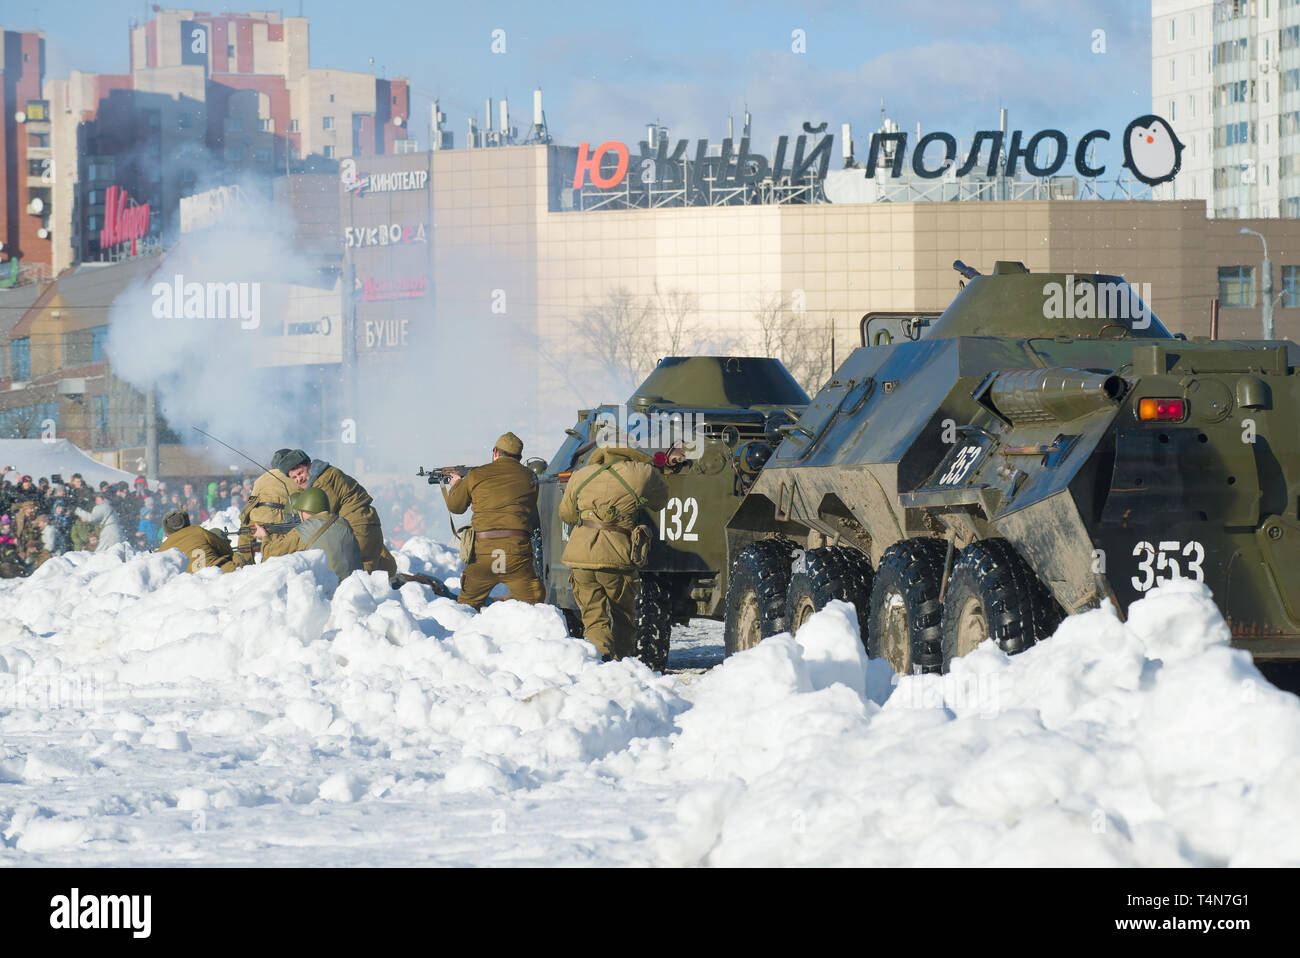 SAINT-PETERSBURG, RUSSIA - FEBRUARY 17, 2019: Fragment of the battle during the military-historical reconstruction in honor of the thirty years withdr Stock Photo